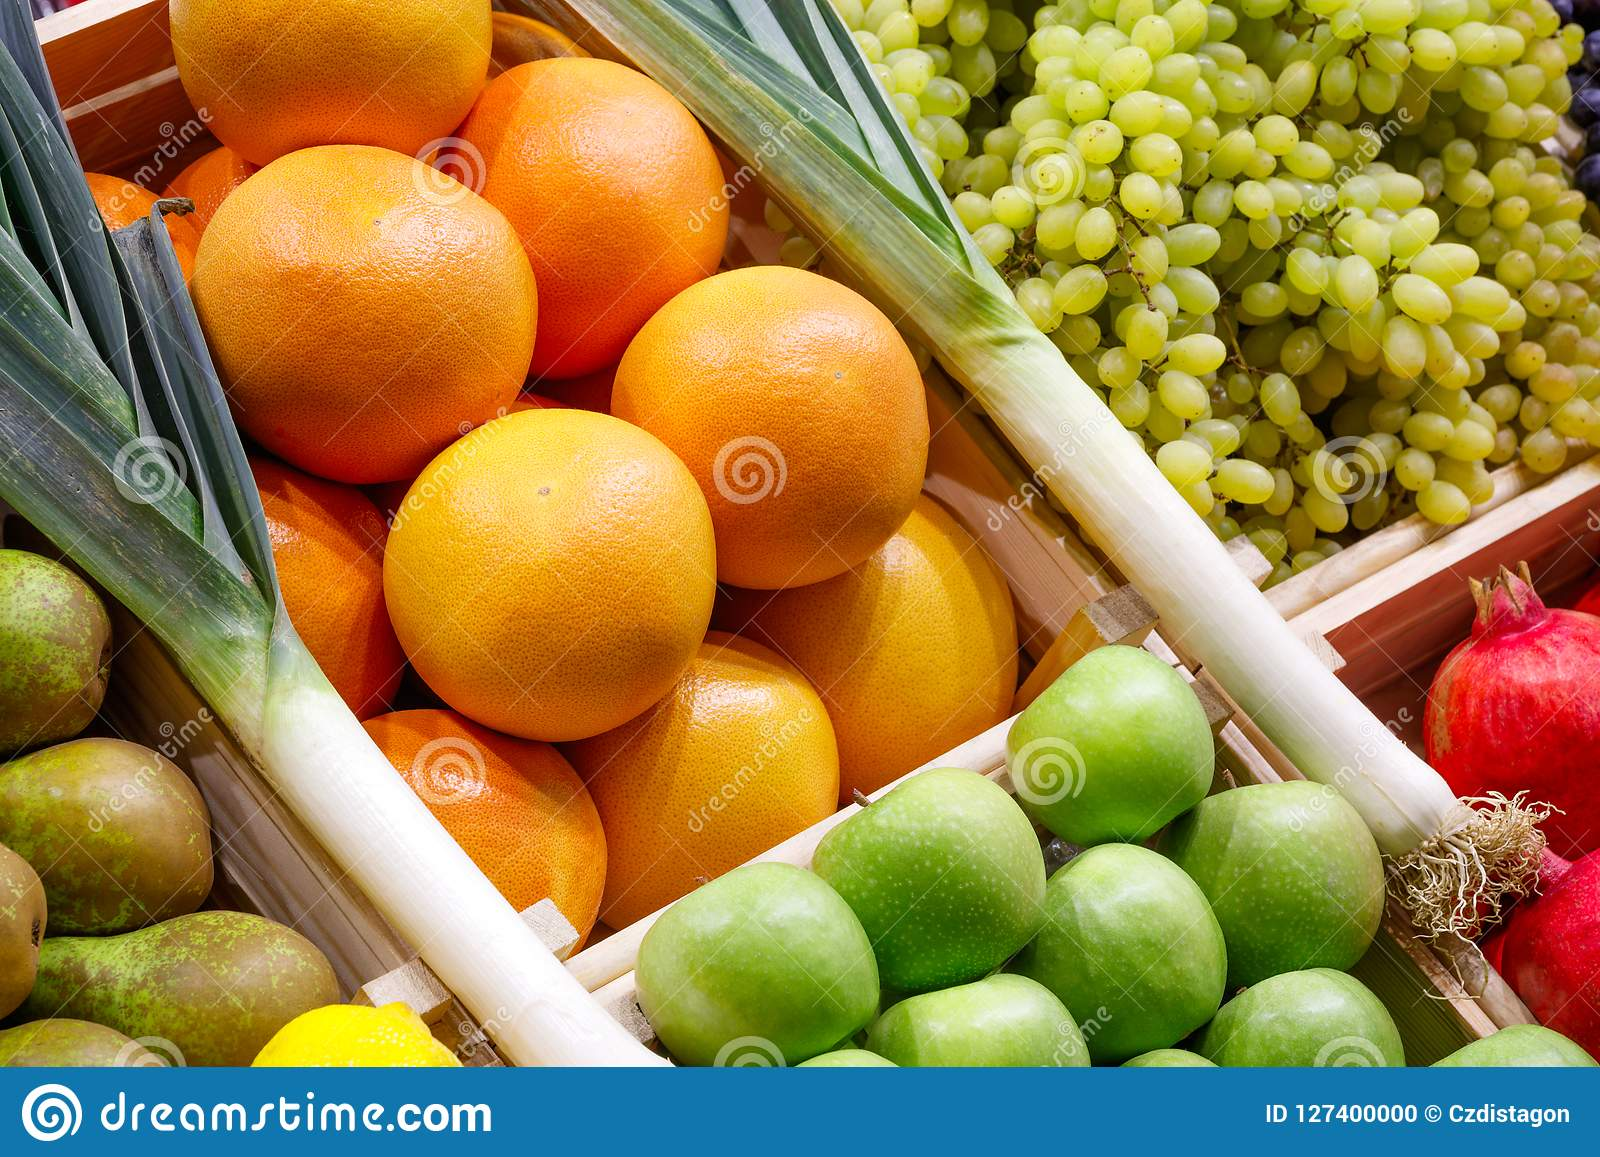 Big choice of fresh fruits and vegetables on market counter.